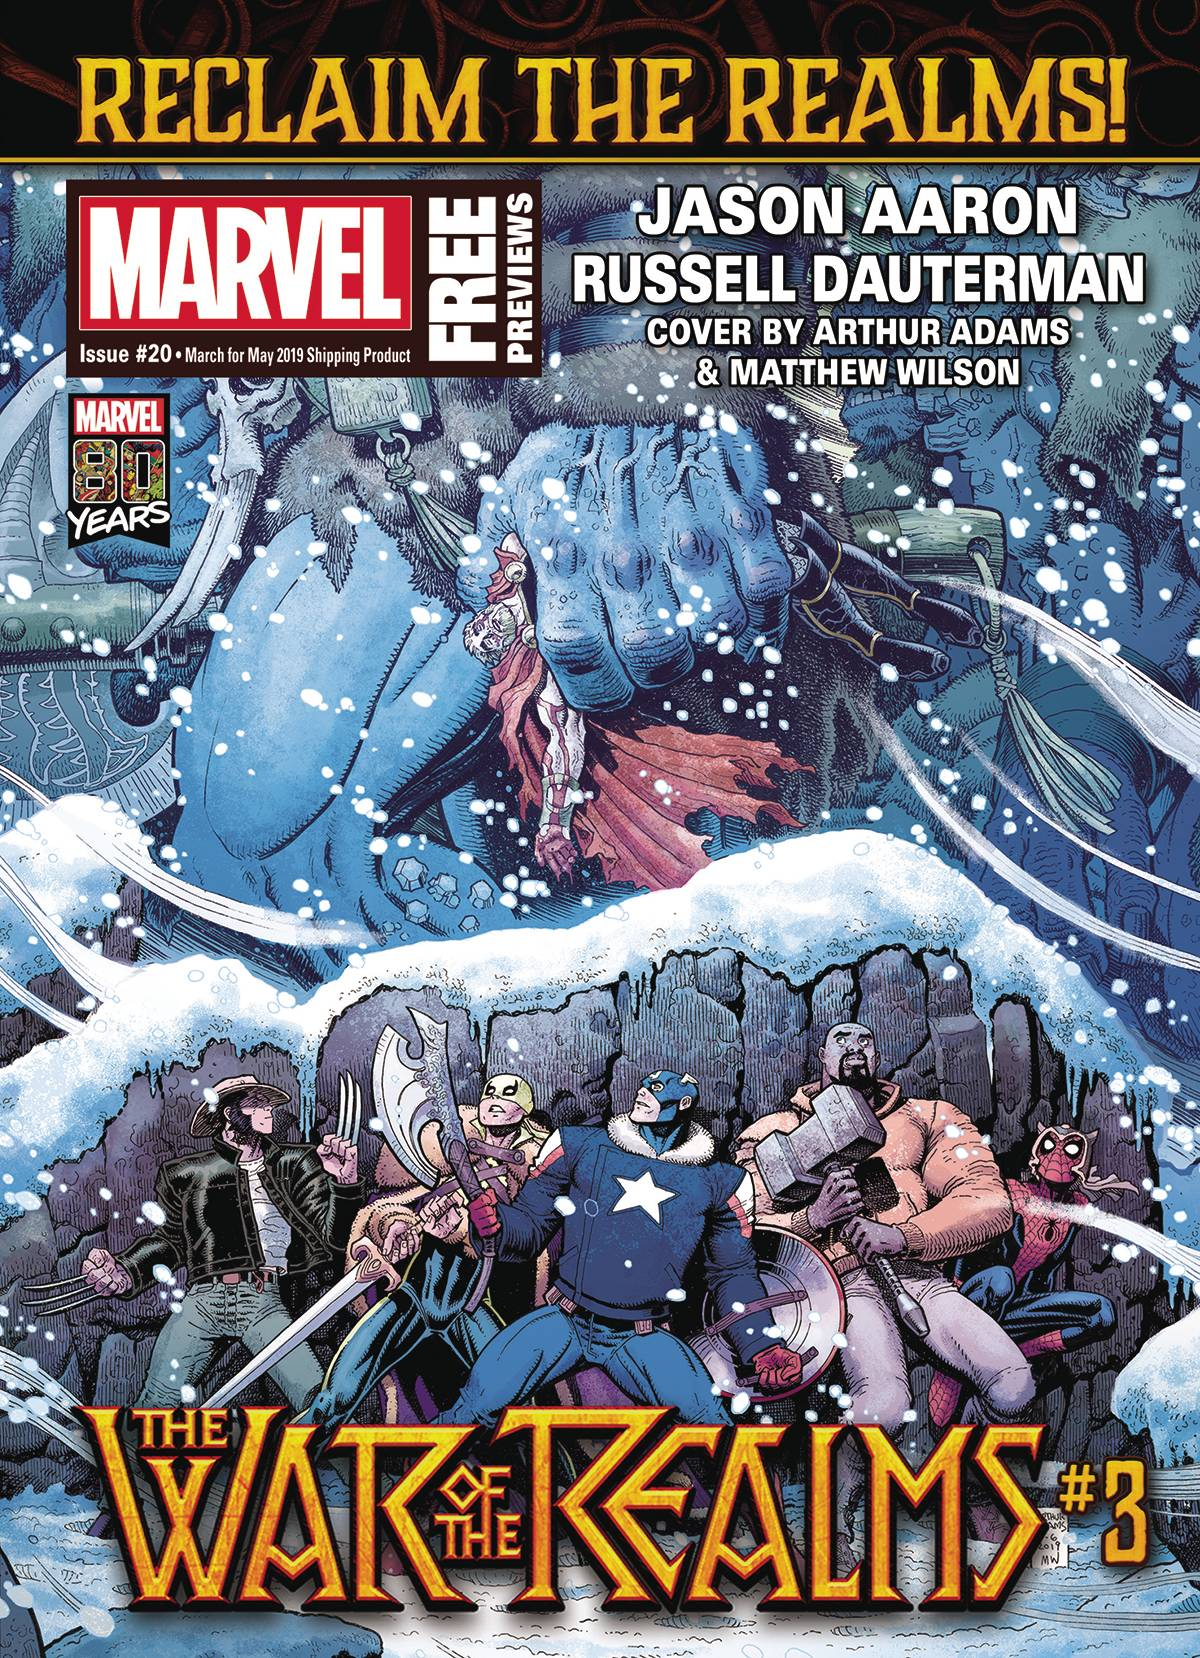 Marvel Previews Volume 4 #22 May 2019 Extras #190